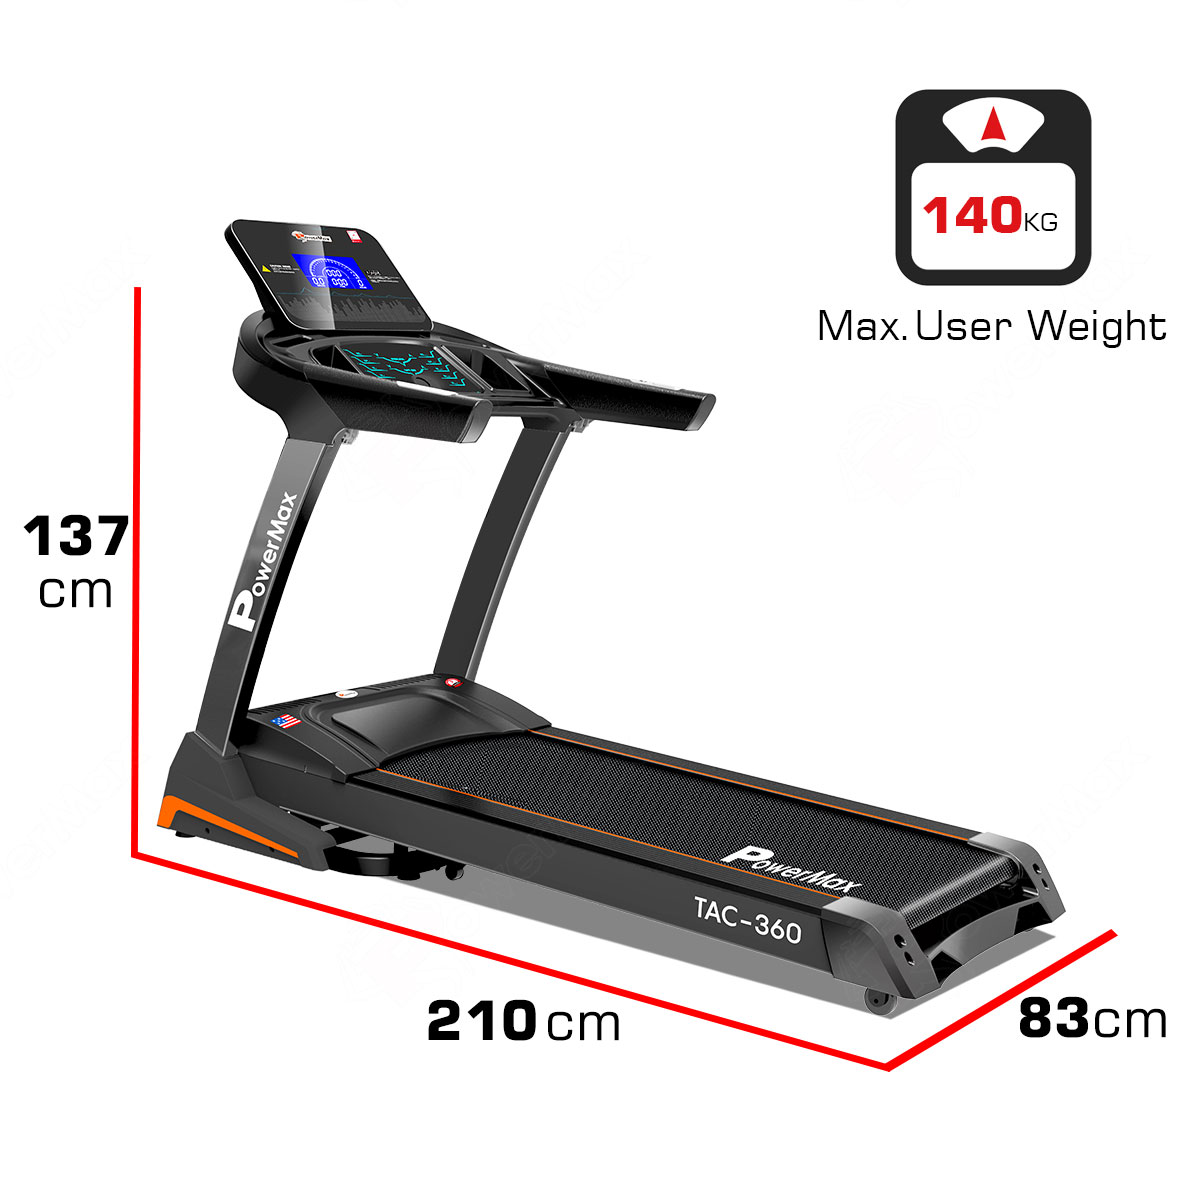 PowerMax Fitness TAC-360 AC Motorized Treadmill with Auto Incline and Auto lubrication